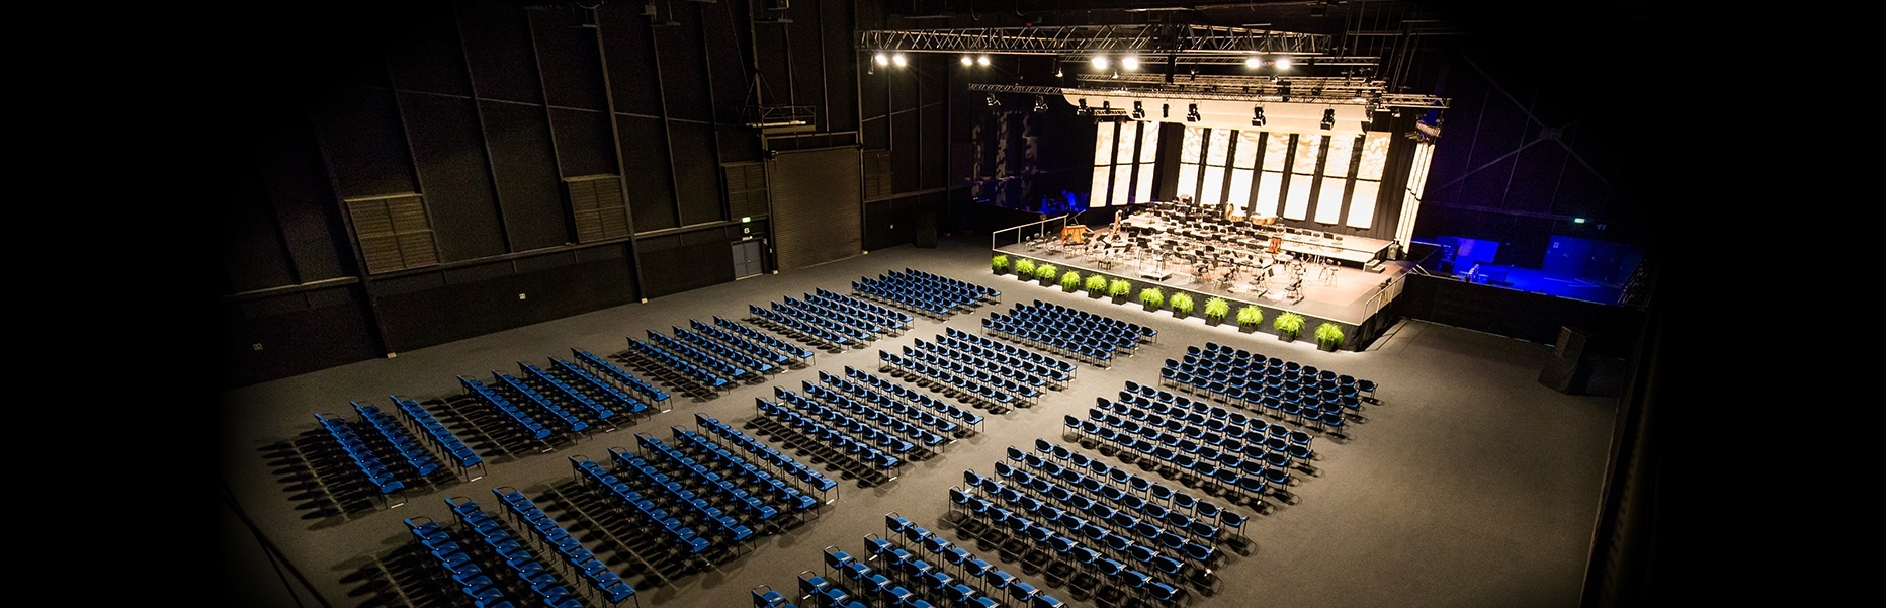 Our spaces - the Convention Centre